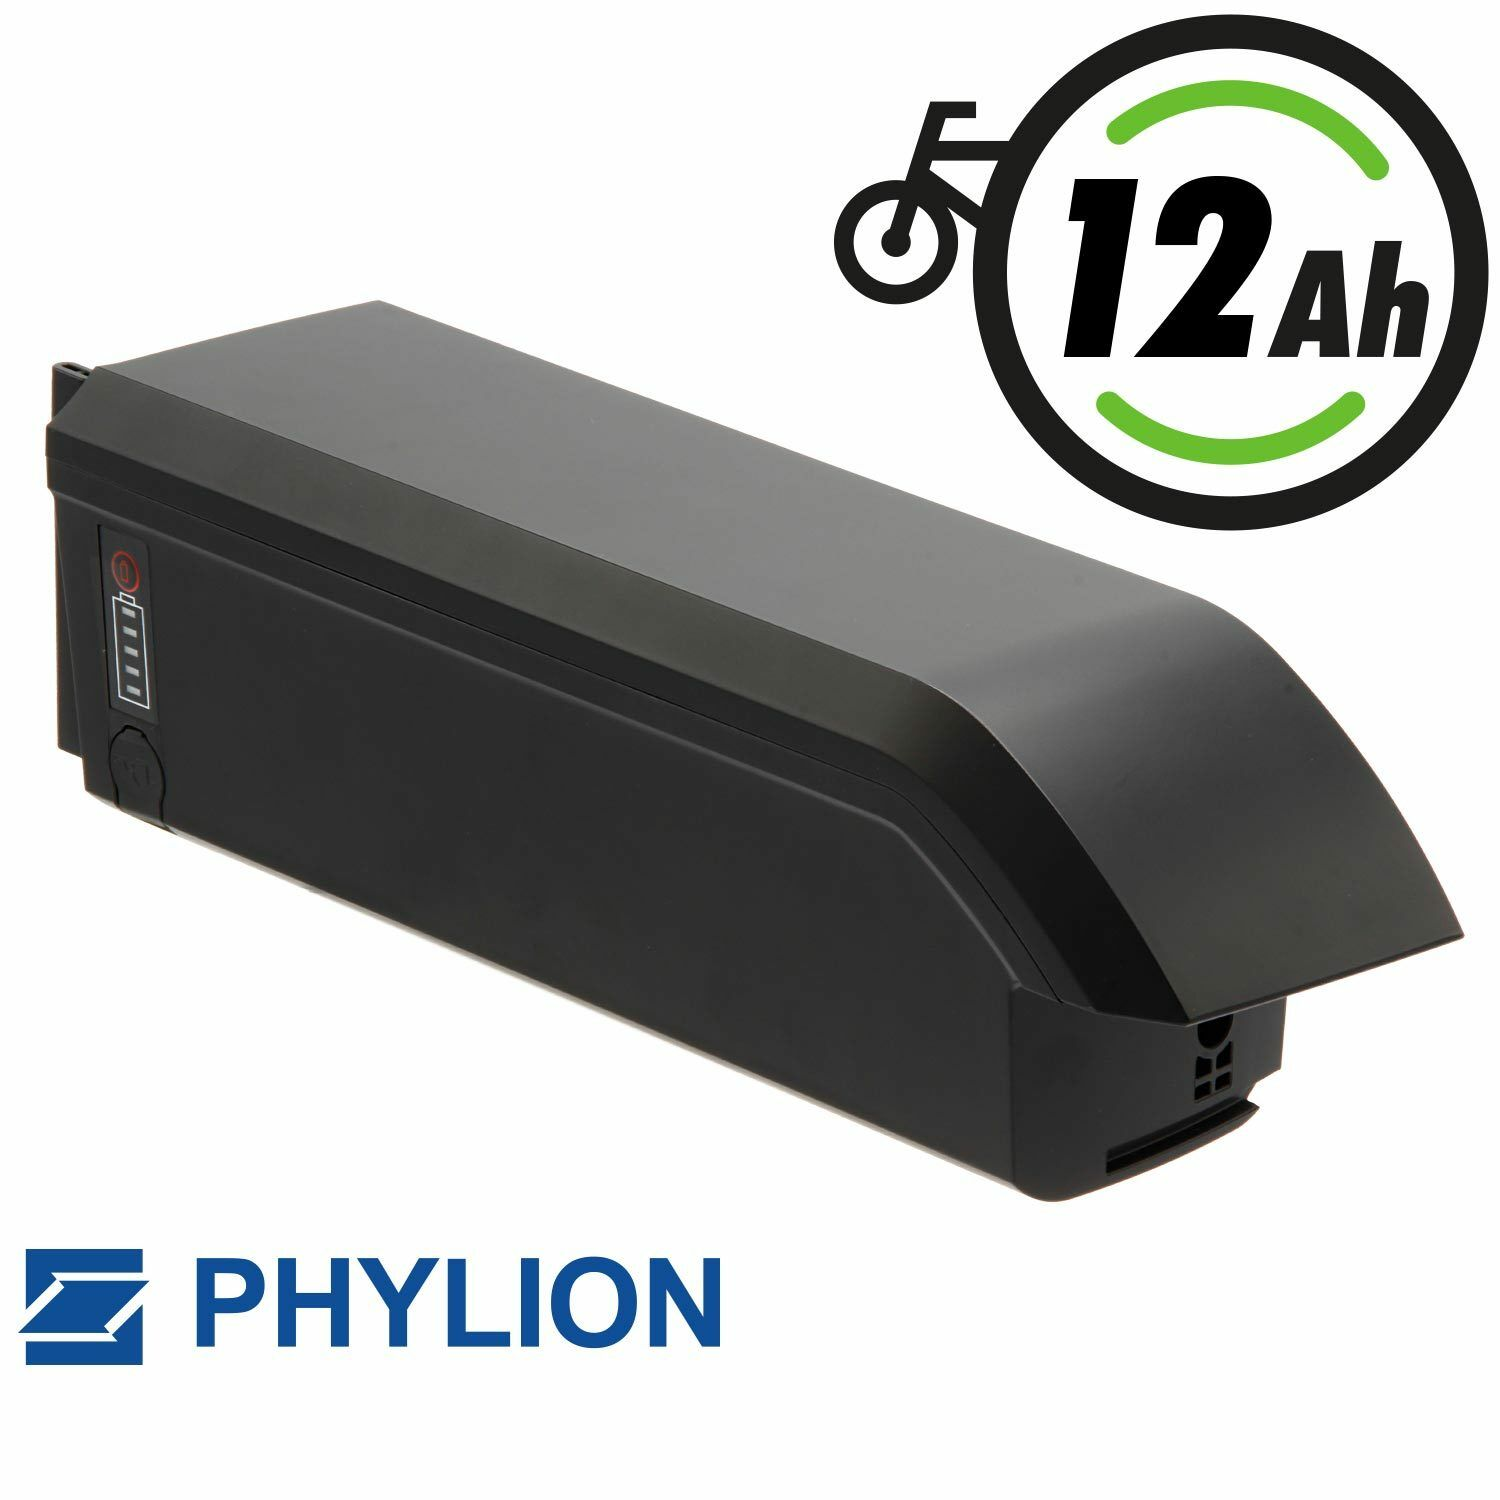 Phylion Battery sf-06s 48v 11,6ah joycube for E-Fahrrad pedelec Fischer MTB, ECU, MTS